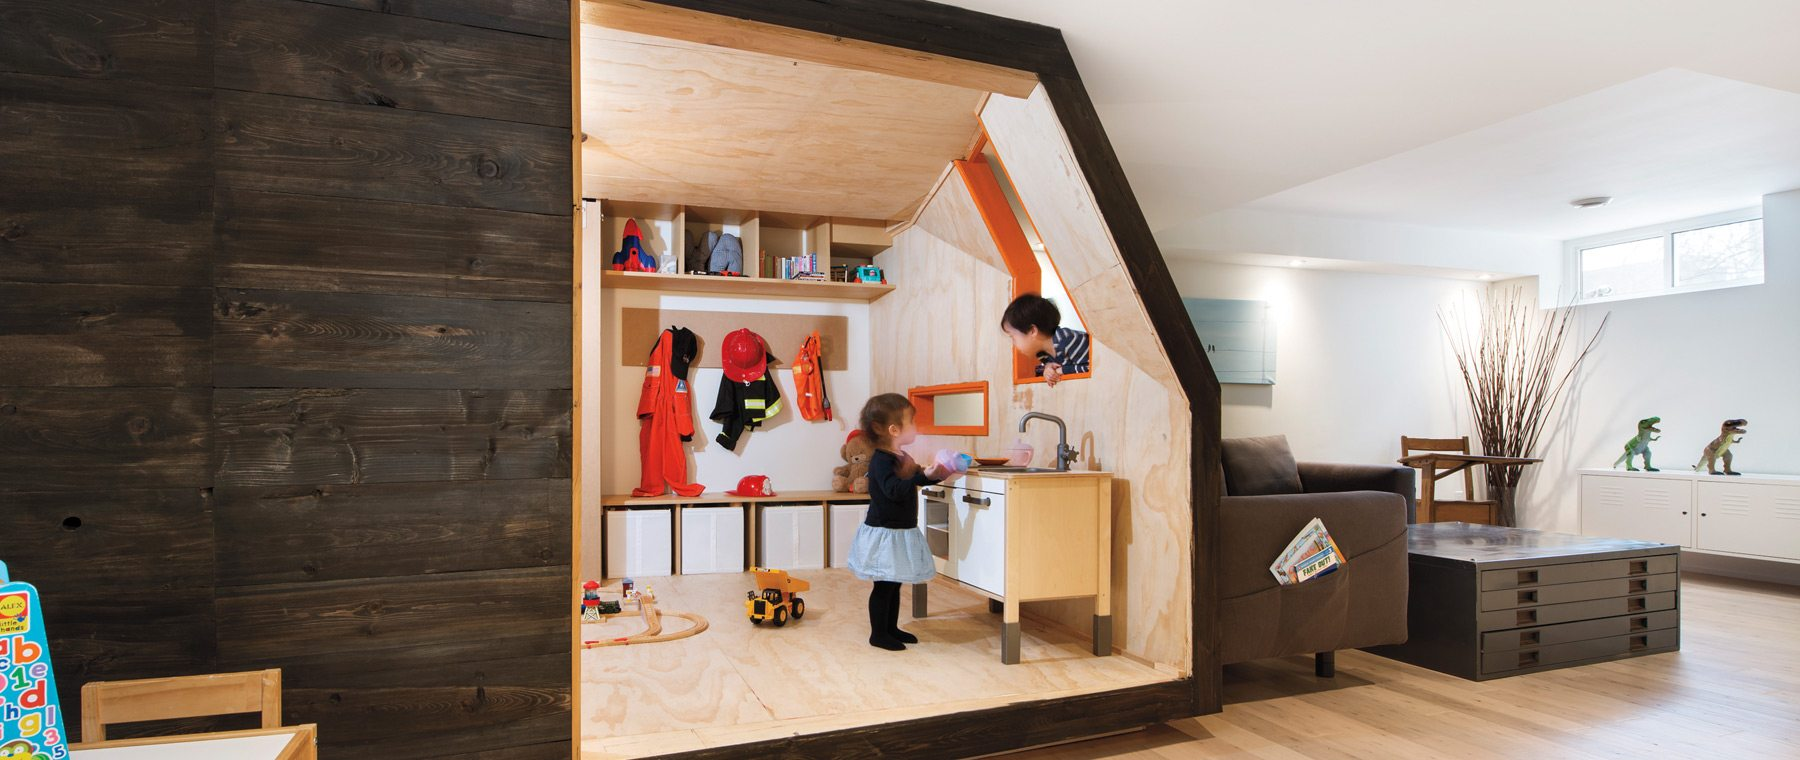 An abstract playhouse encourages imaginative fun